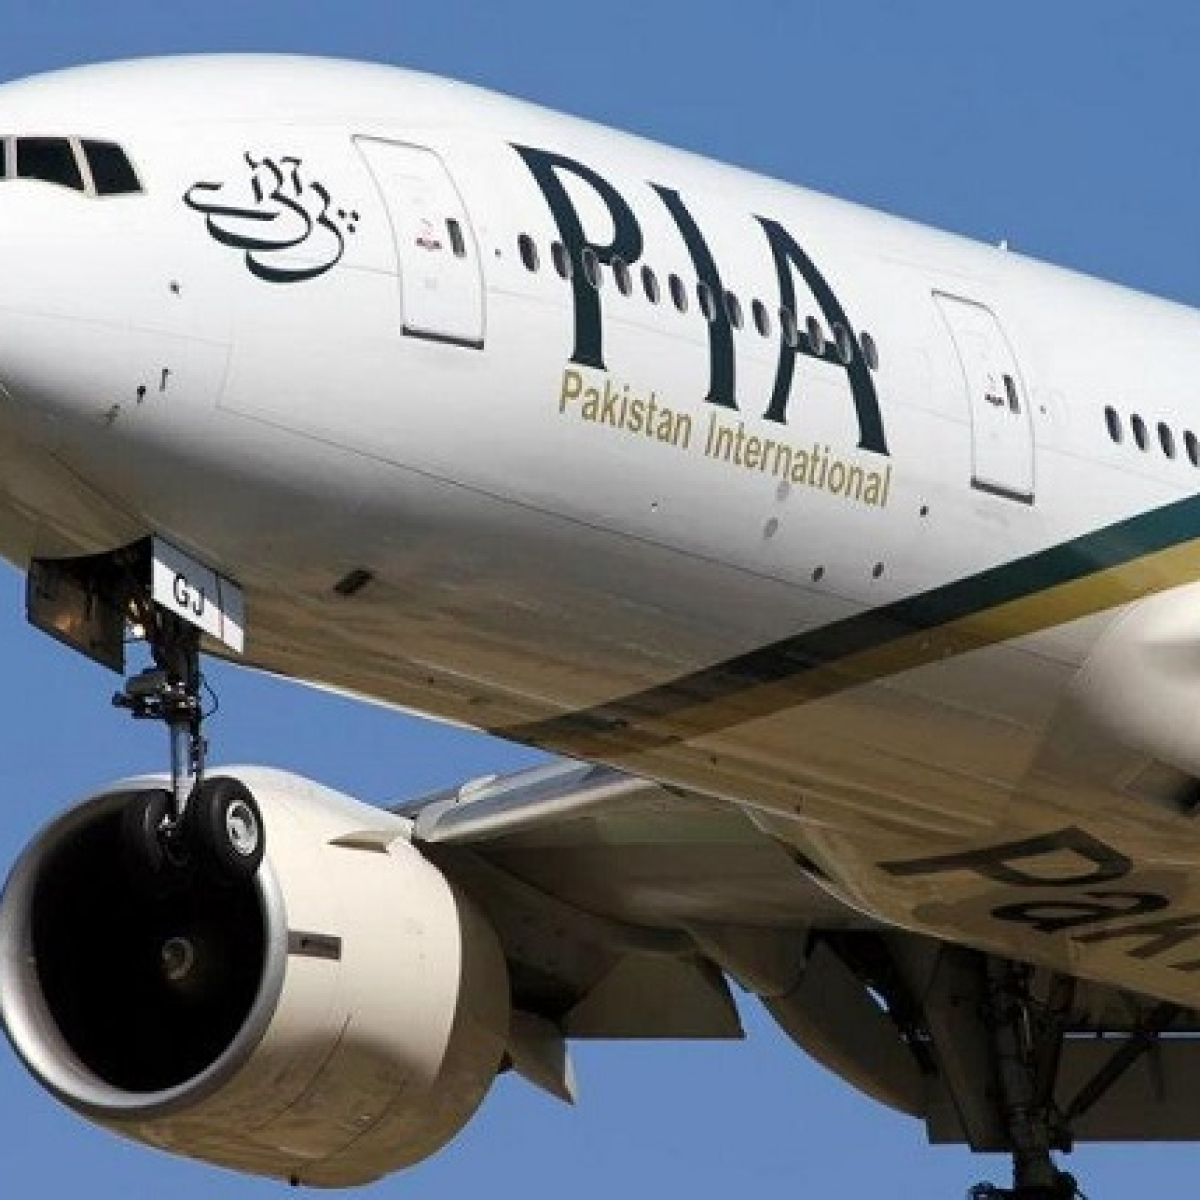 EU bans Pakistan airline from flying to Europe for 6 months over fake pilot licences